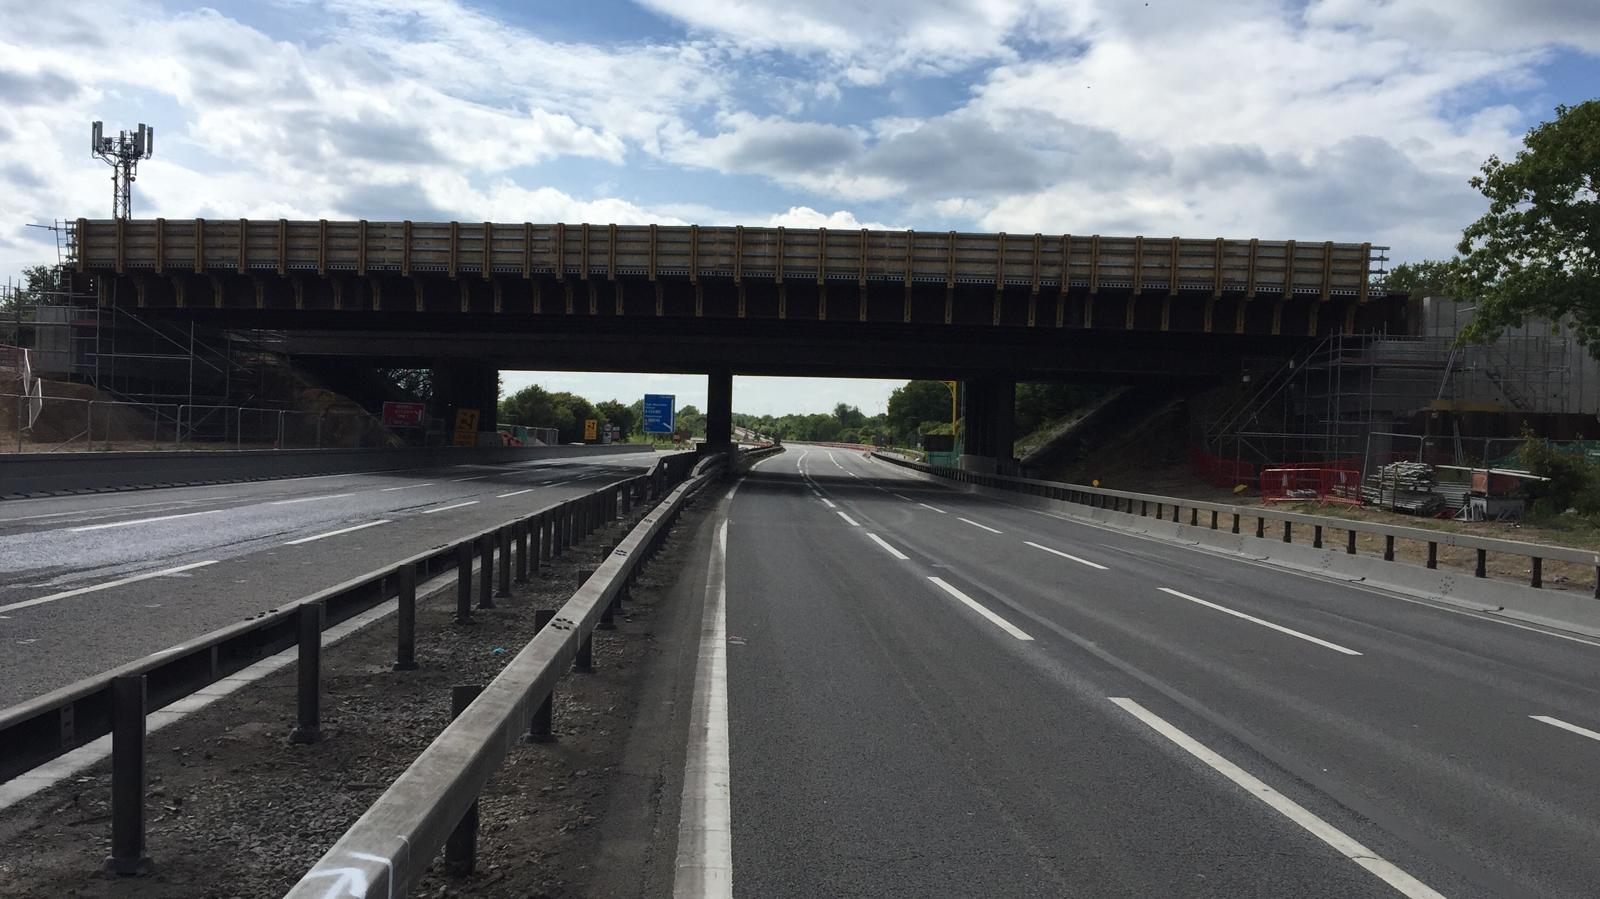 Highways England install two new bridges over the M4 motorway in one weekend